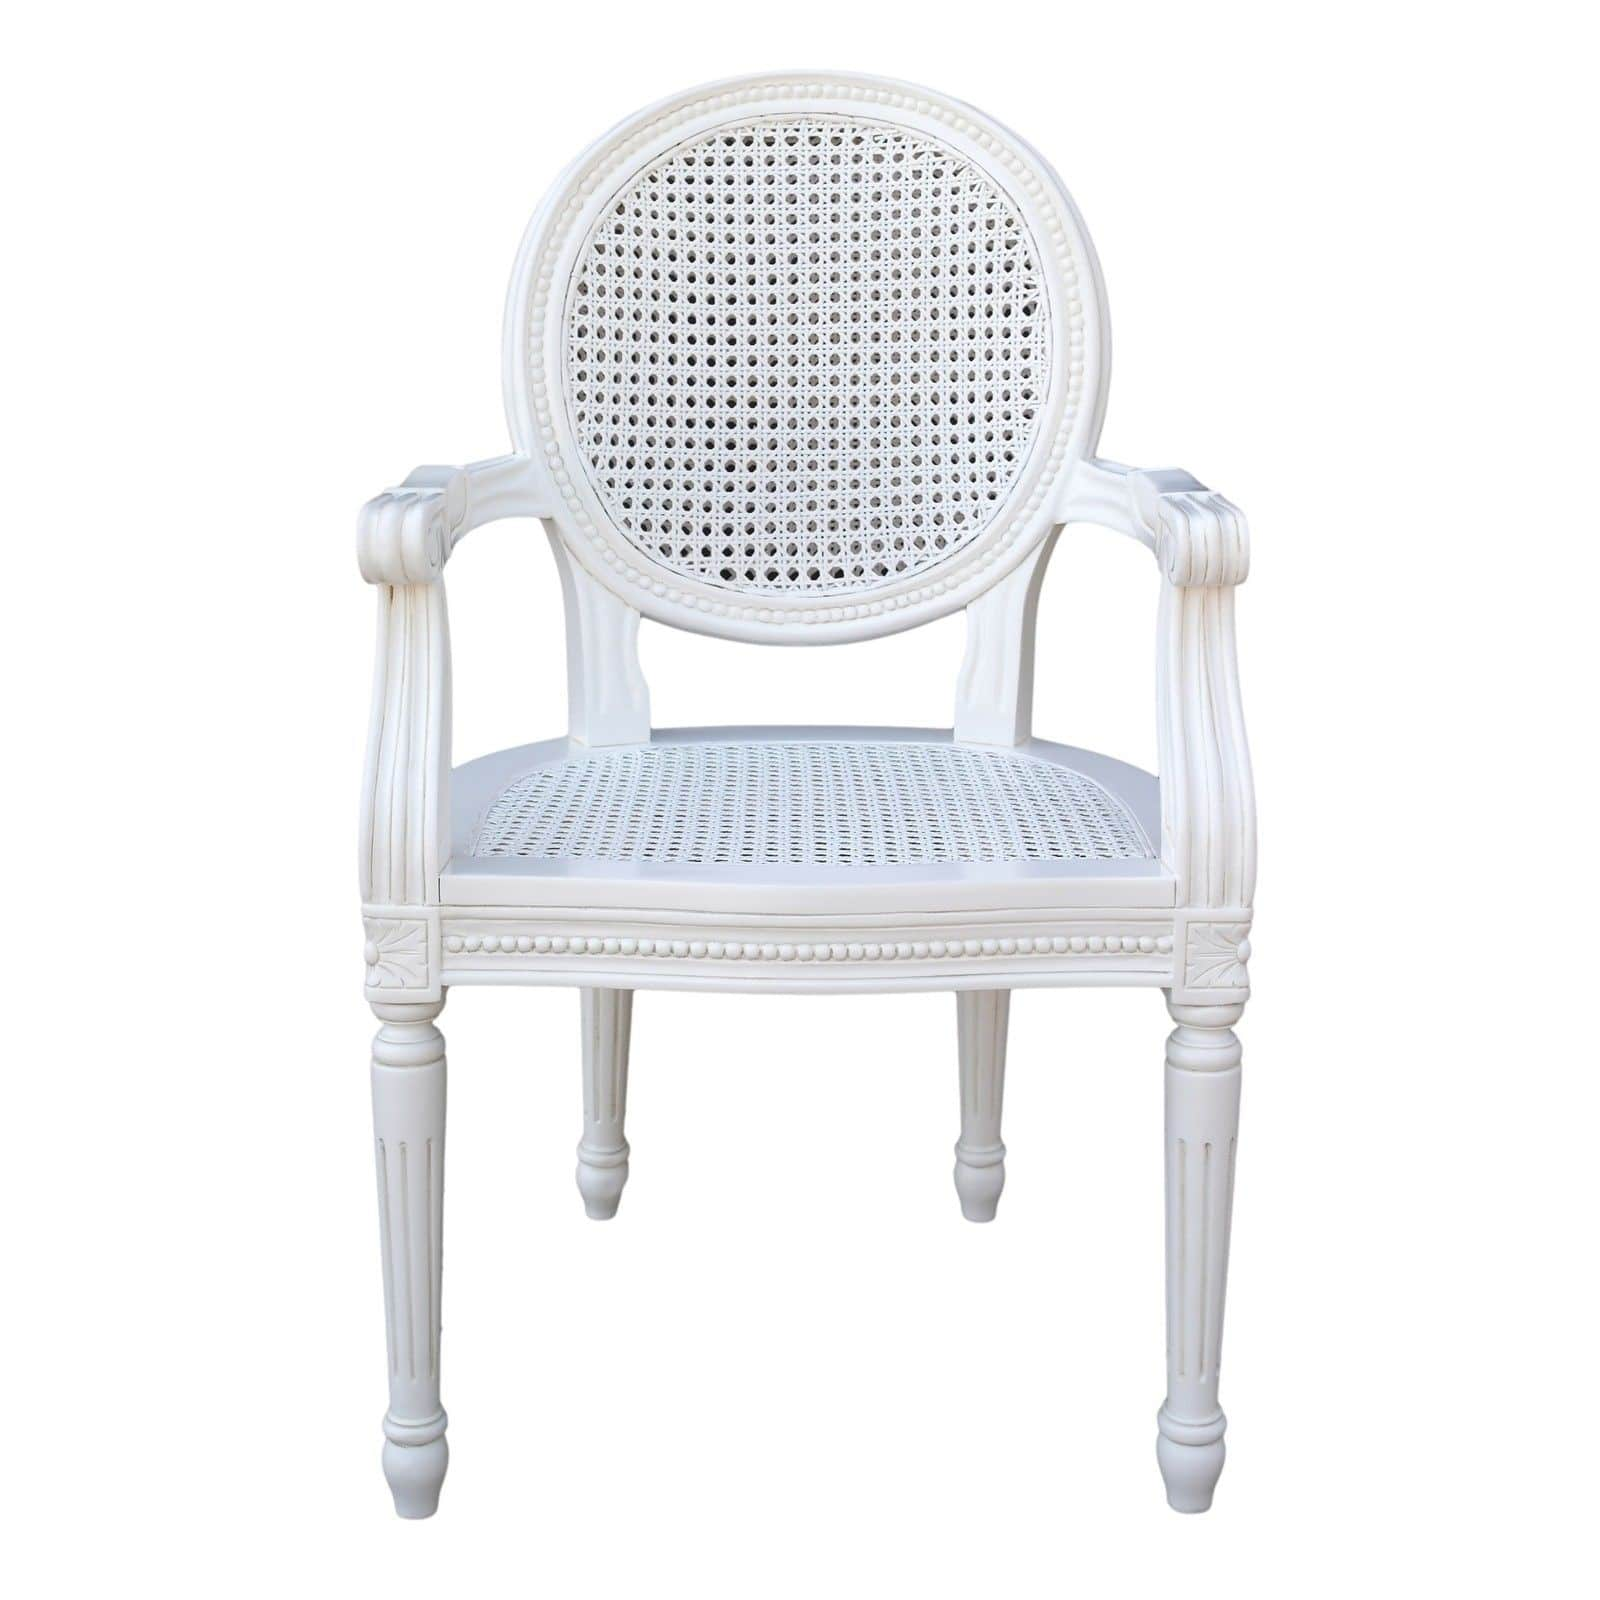 white wicker dining chairs uk office for short people french chateau rattan bedroom arm chair